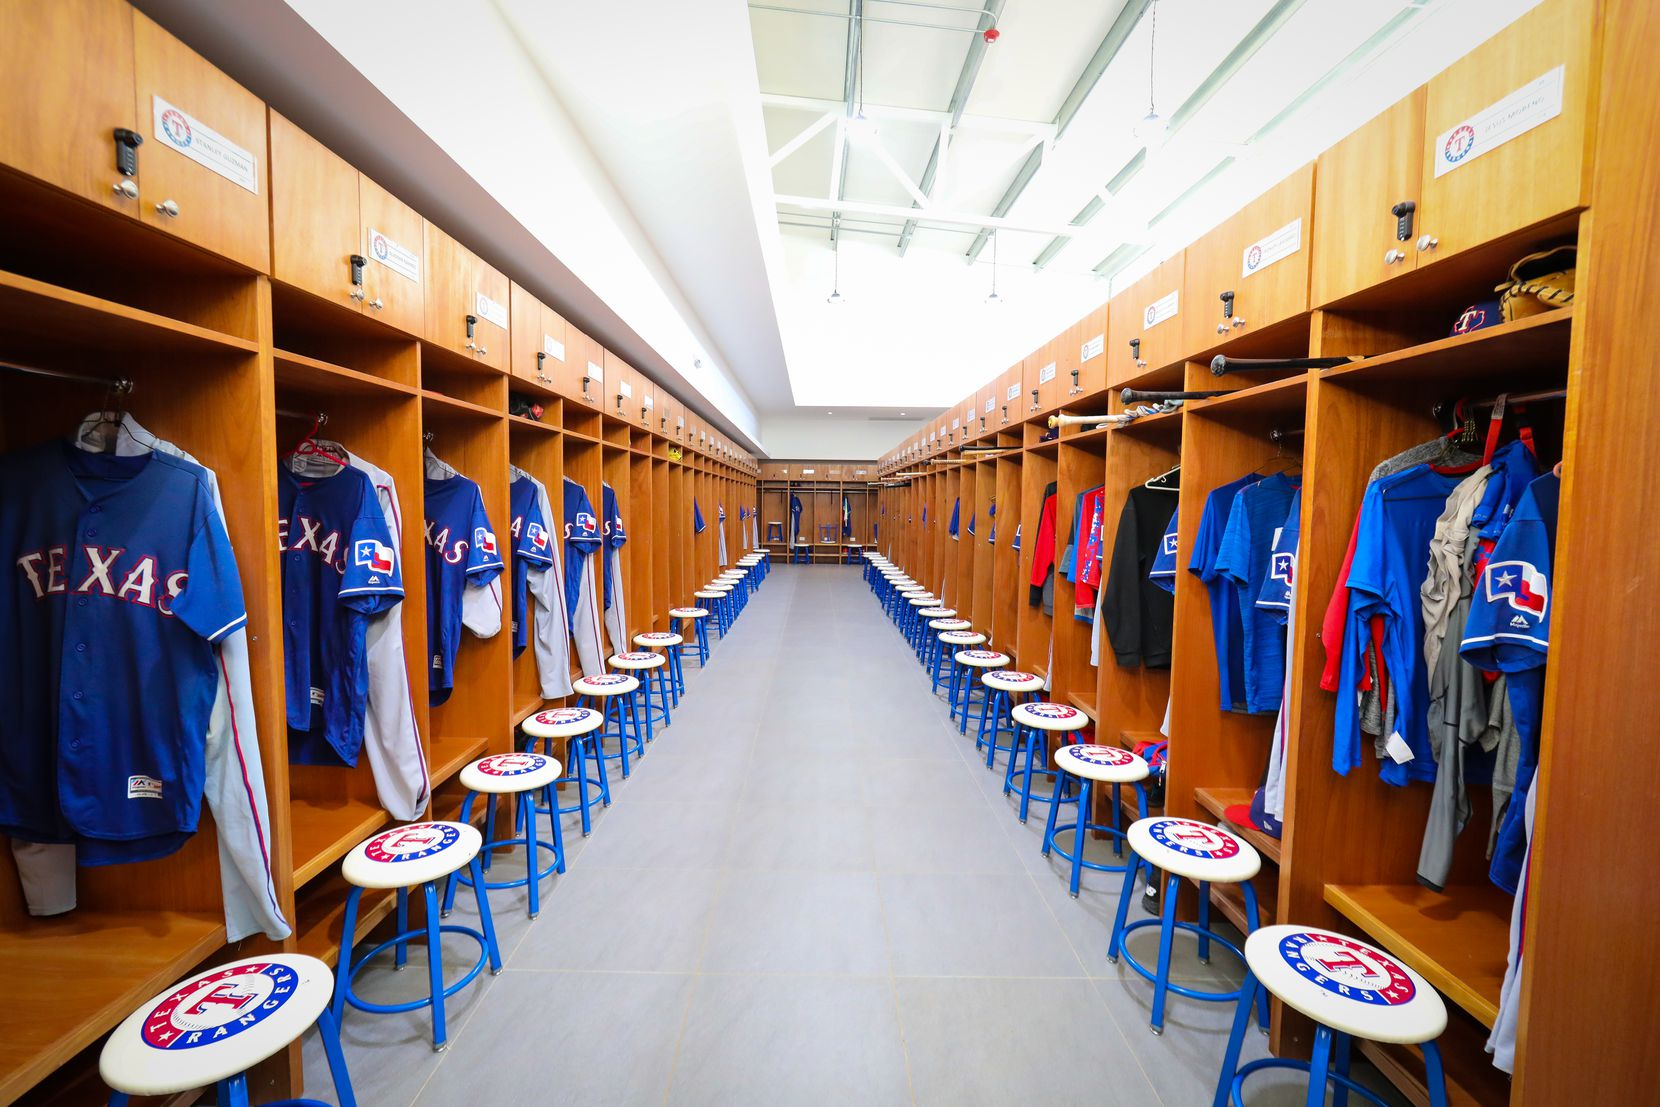 A look inside the clubhouse in the Texas Rangers' new $12.5 million baseball academy located in Boca Chica, Dominican Republic. (Kelly Gavin/Texas Rangers Baseball Club)